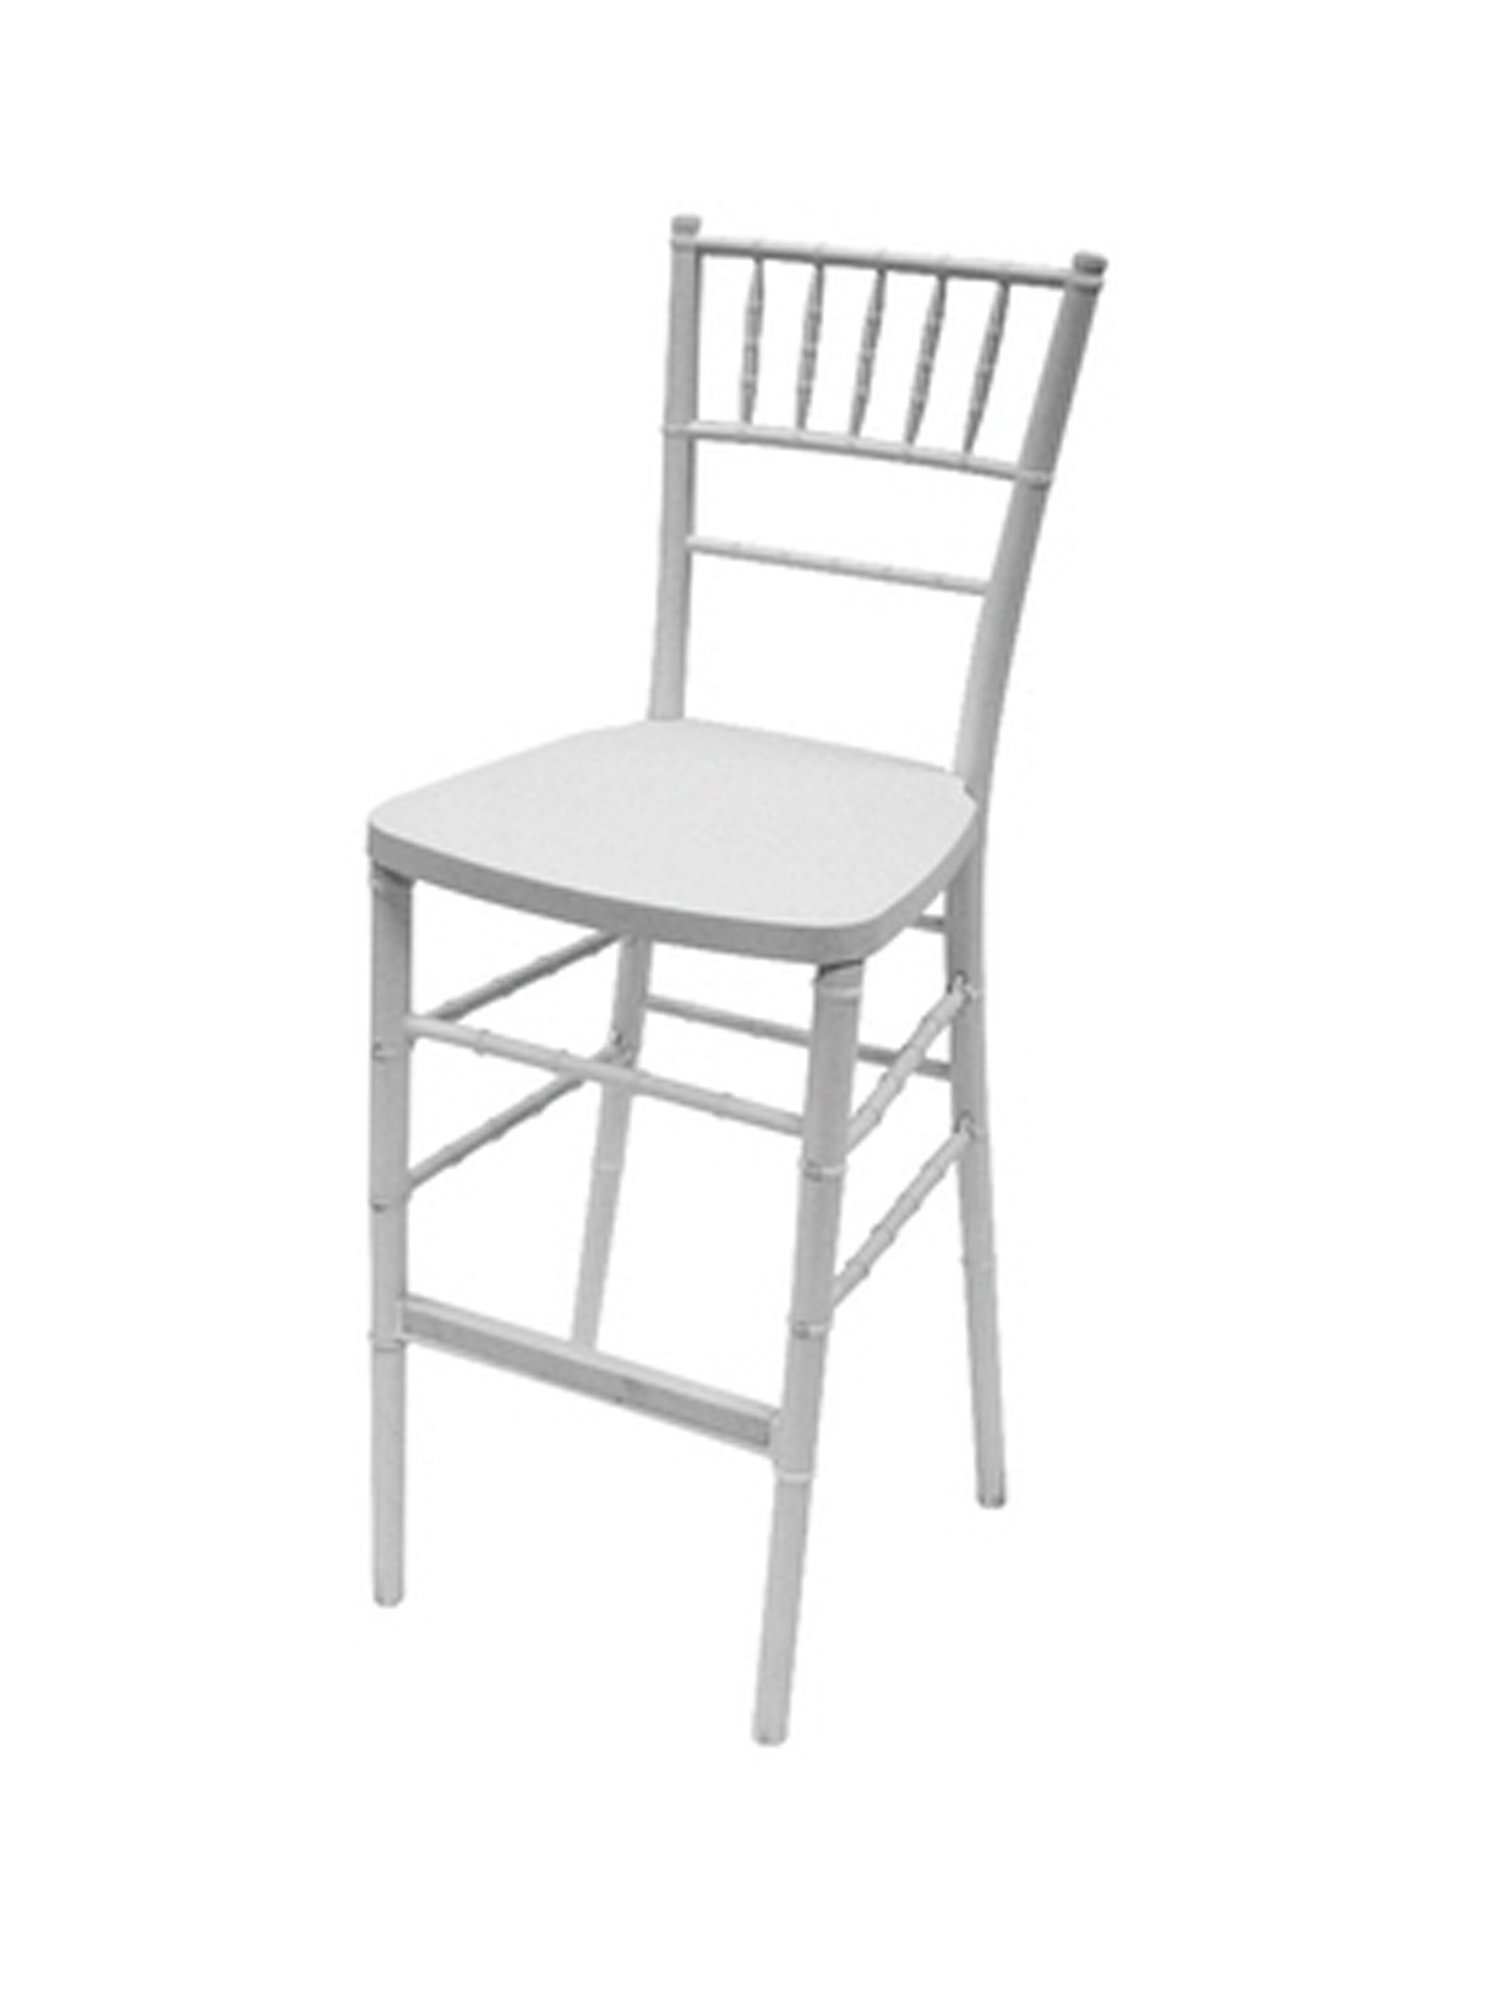 CSP Events RBB-900K-WH RBB 900K BL ''Max'' Chiavari Barstool Steel Core with ED Resin, 46.5'' Height, 16'' Width, 16'' Length, White